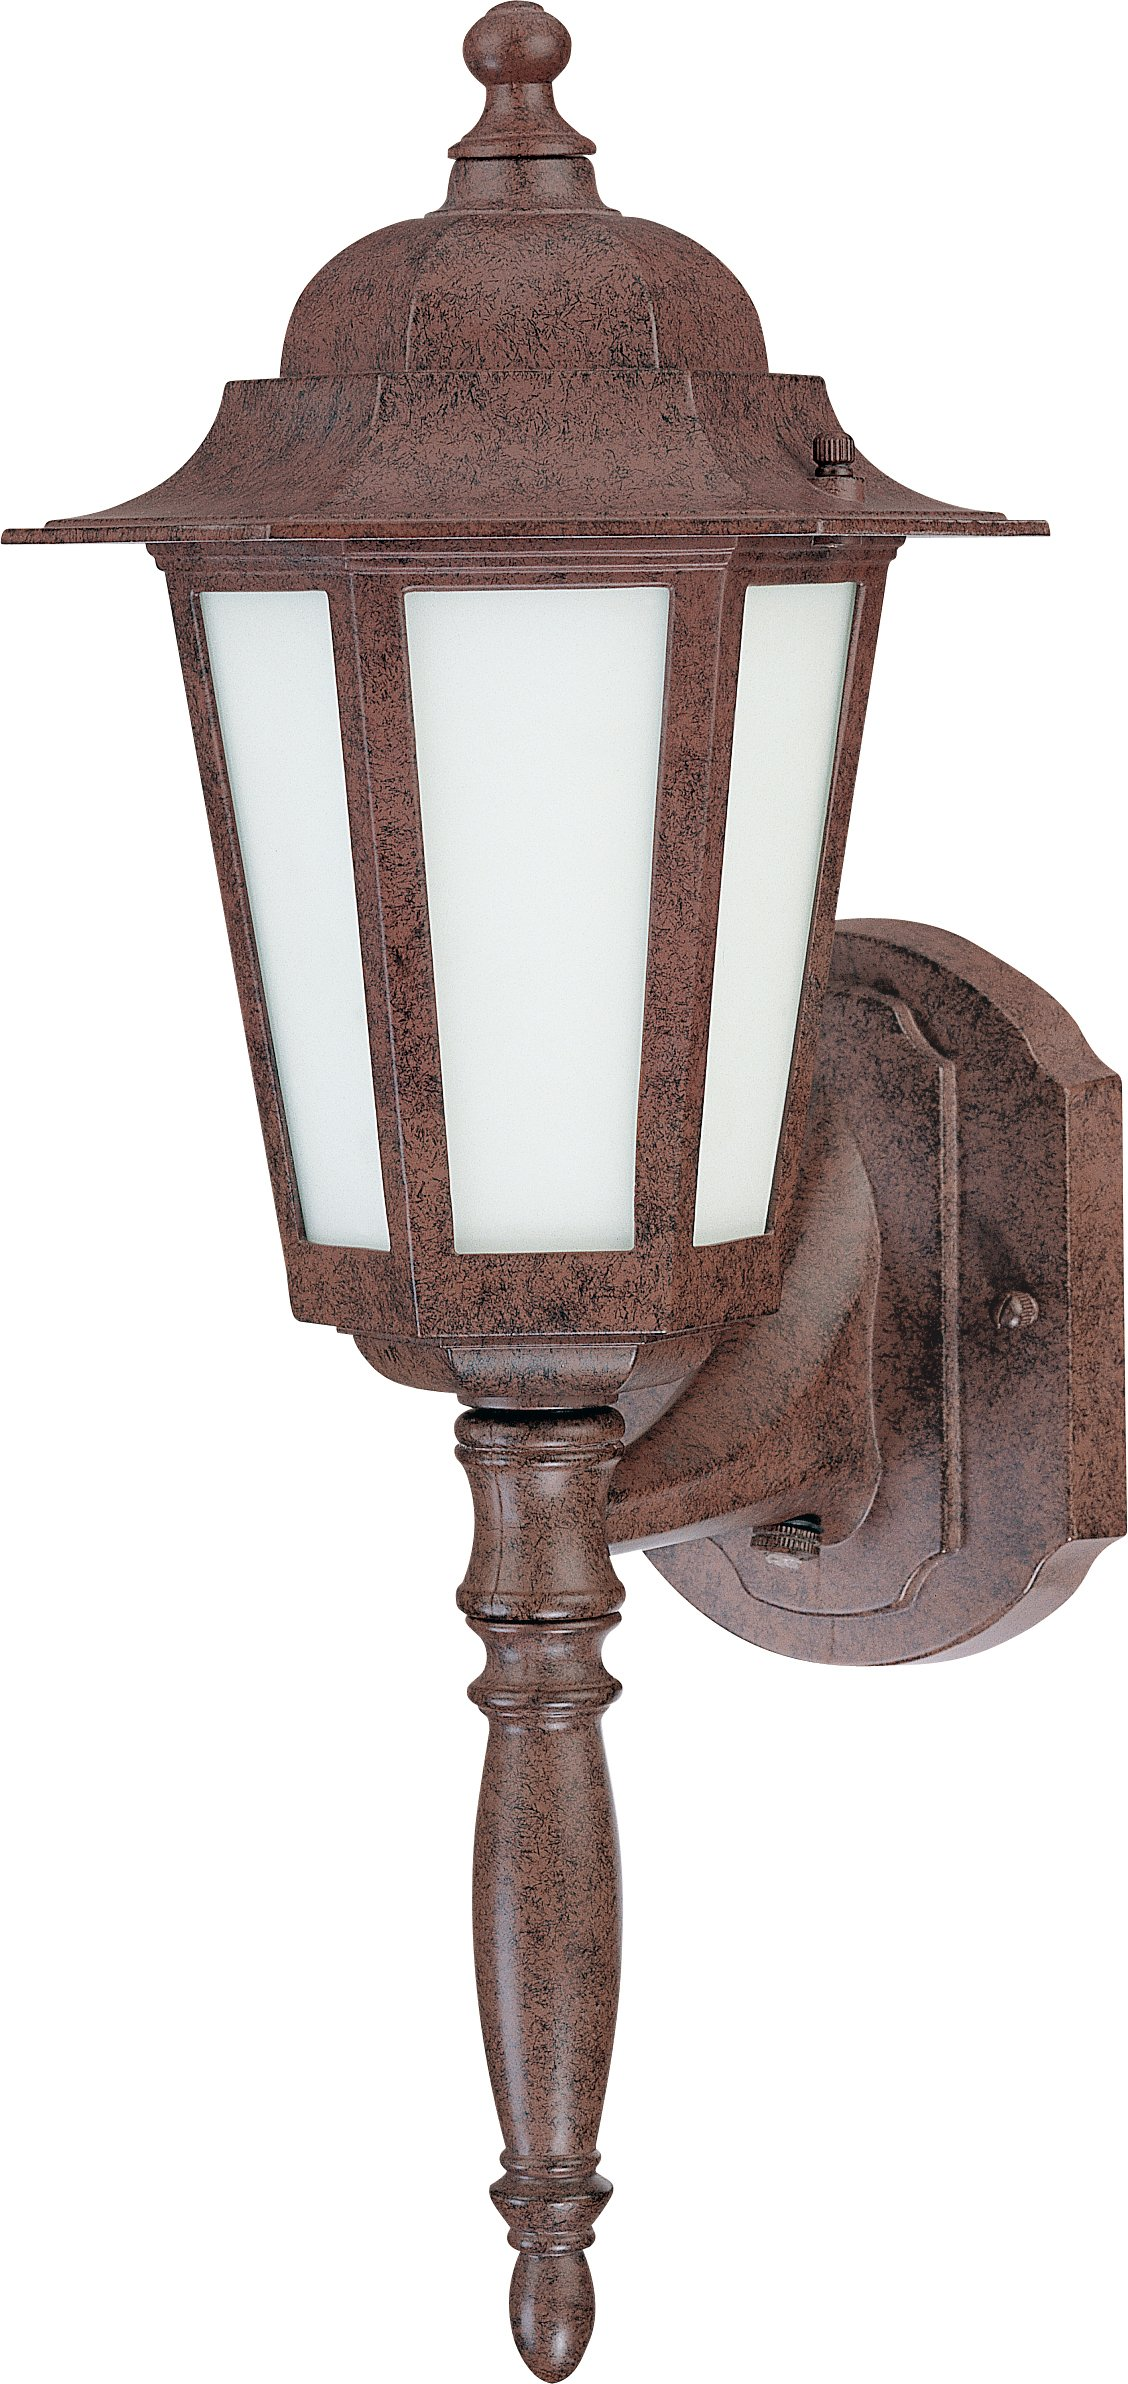 Nuvo Lighting 60/2202 One Light Cornerstone Wall Lantern with Frosted Glass and Photocell, Old Bronze by Nuvo Lighting